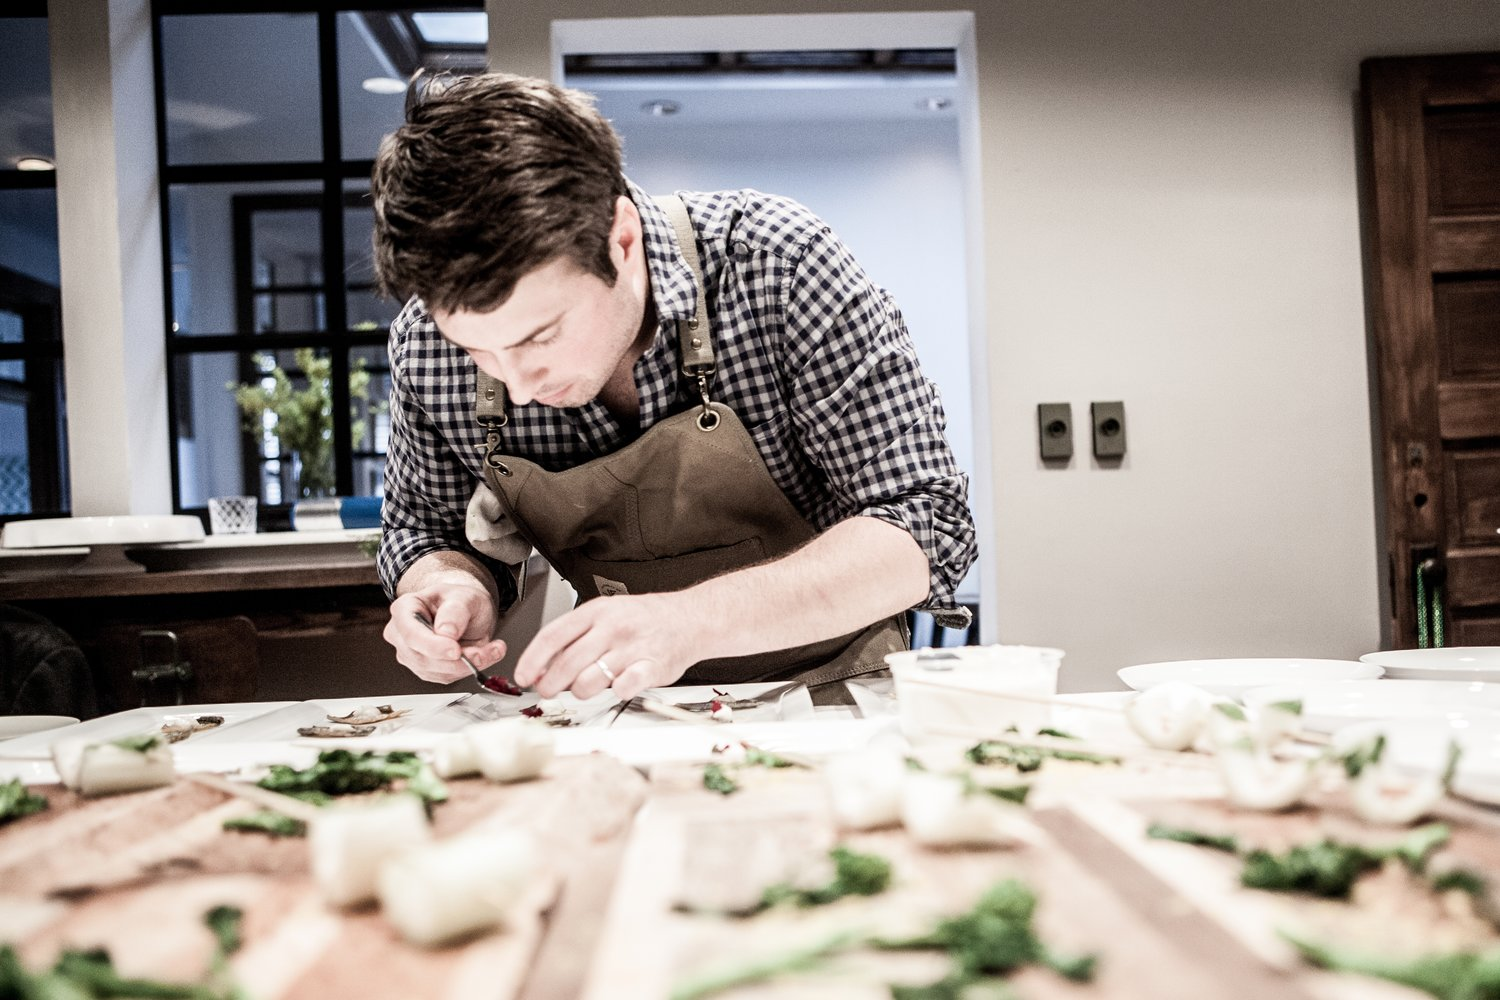 Michael Gallina of Vicia Restaurant. Image by Vicini Restaurant.